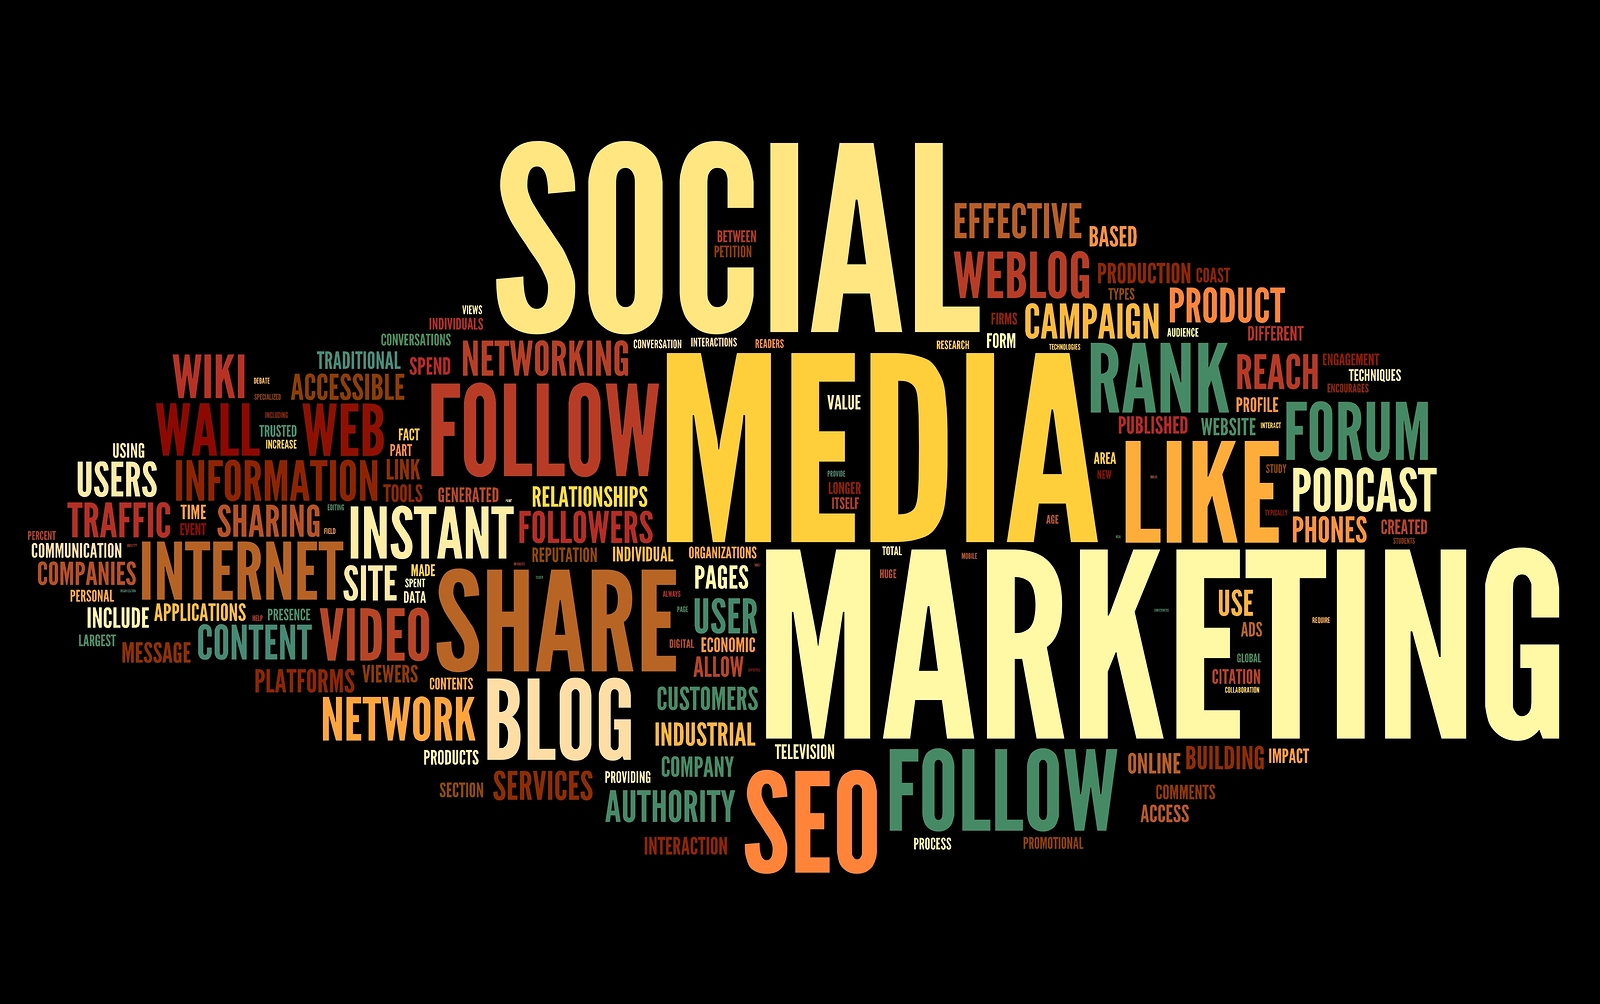 How to Extend Global Marketing Efforts Through Social Media